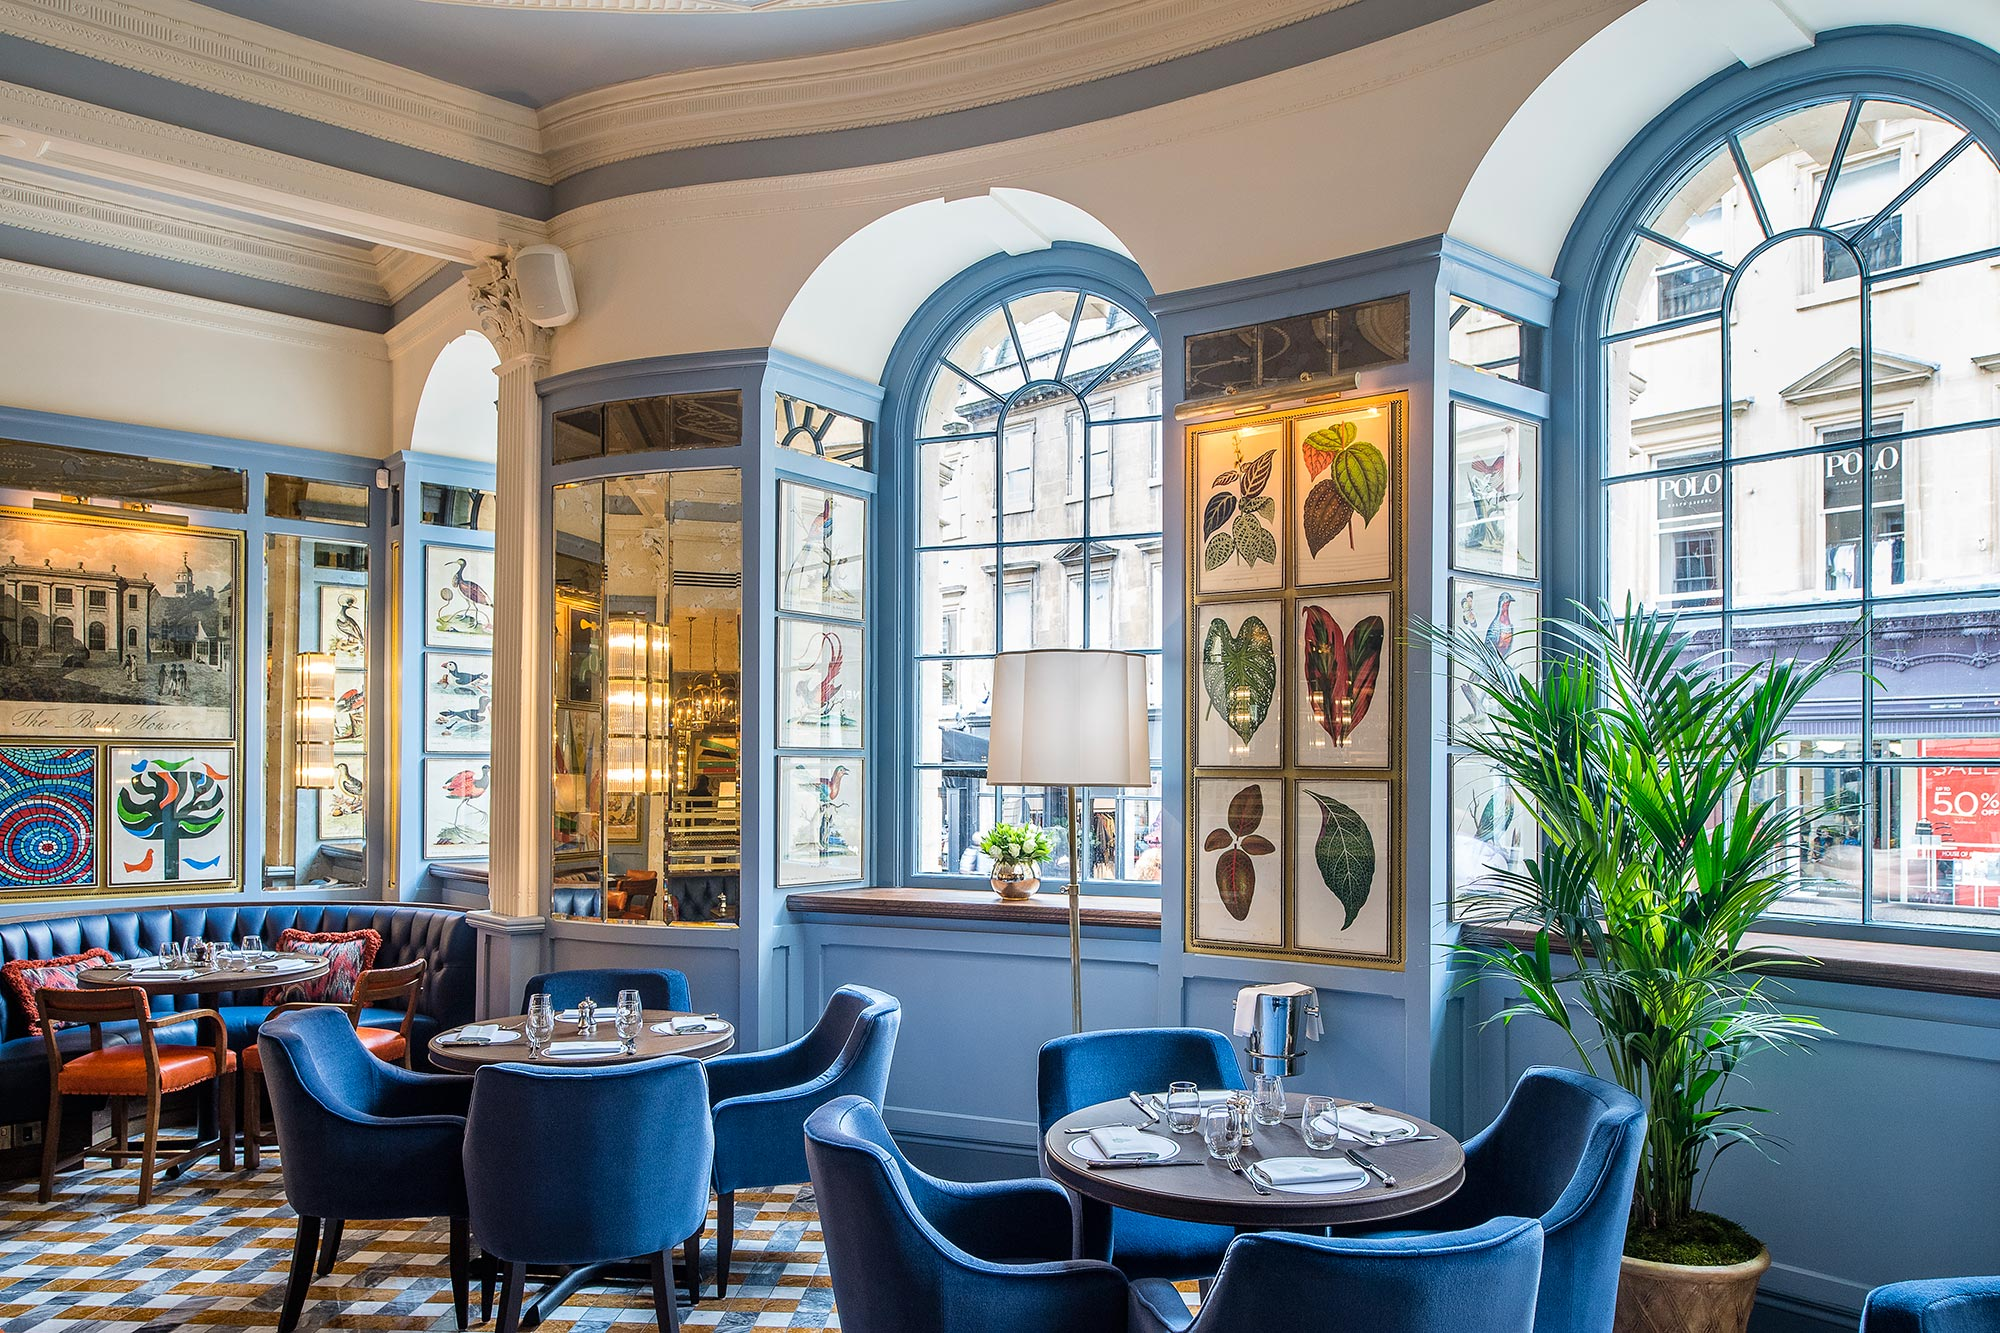 Restaurant in Bath, Milsom Street, The Ivy Bath Brasserie - The Ivy Bath Brasserie